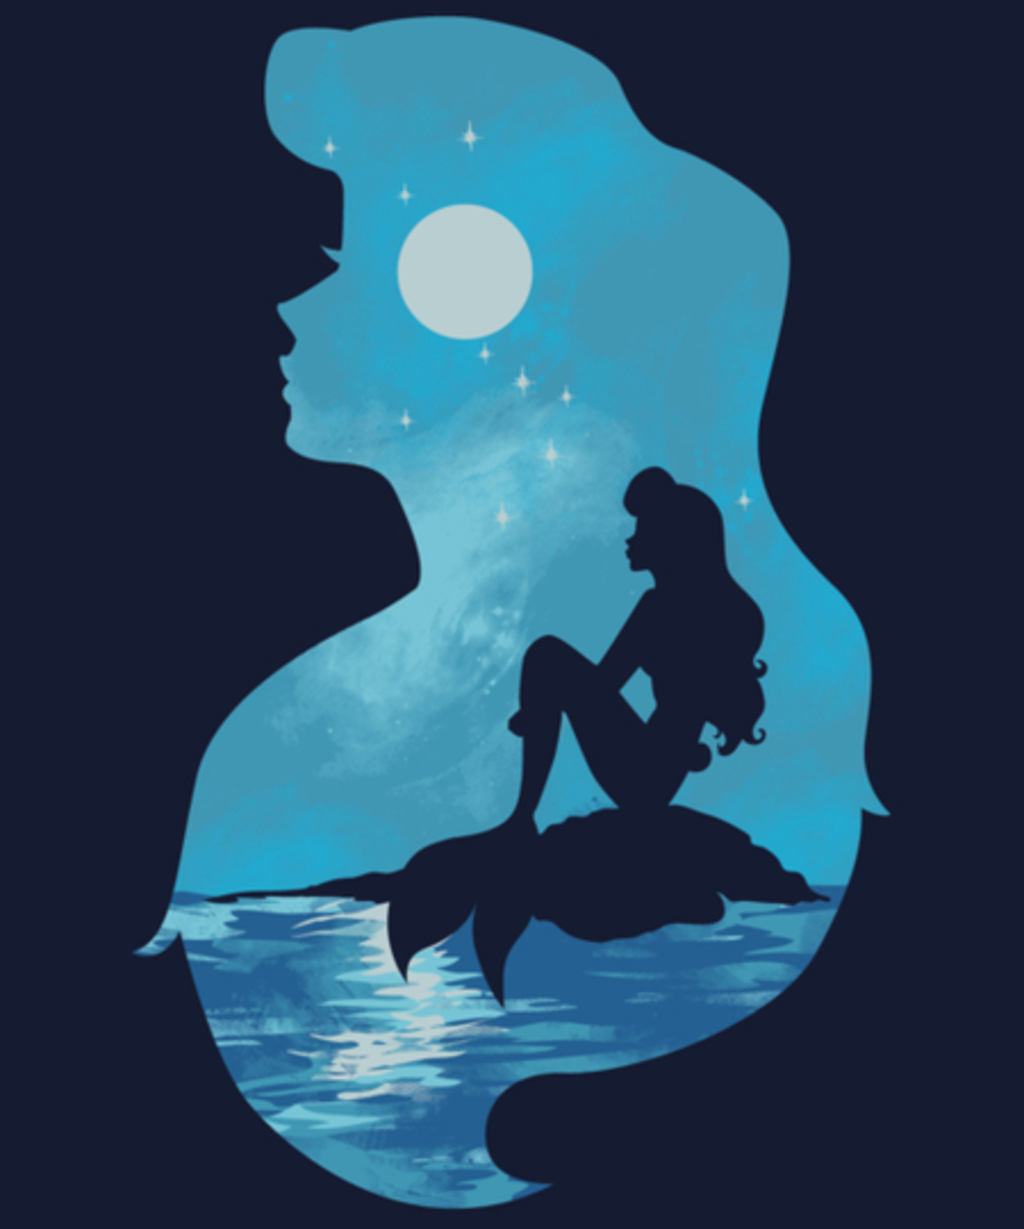 Qwertee: Mermaid portrait